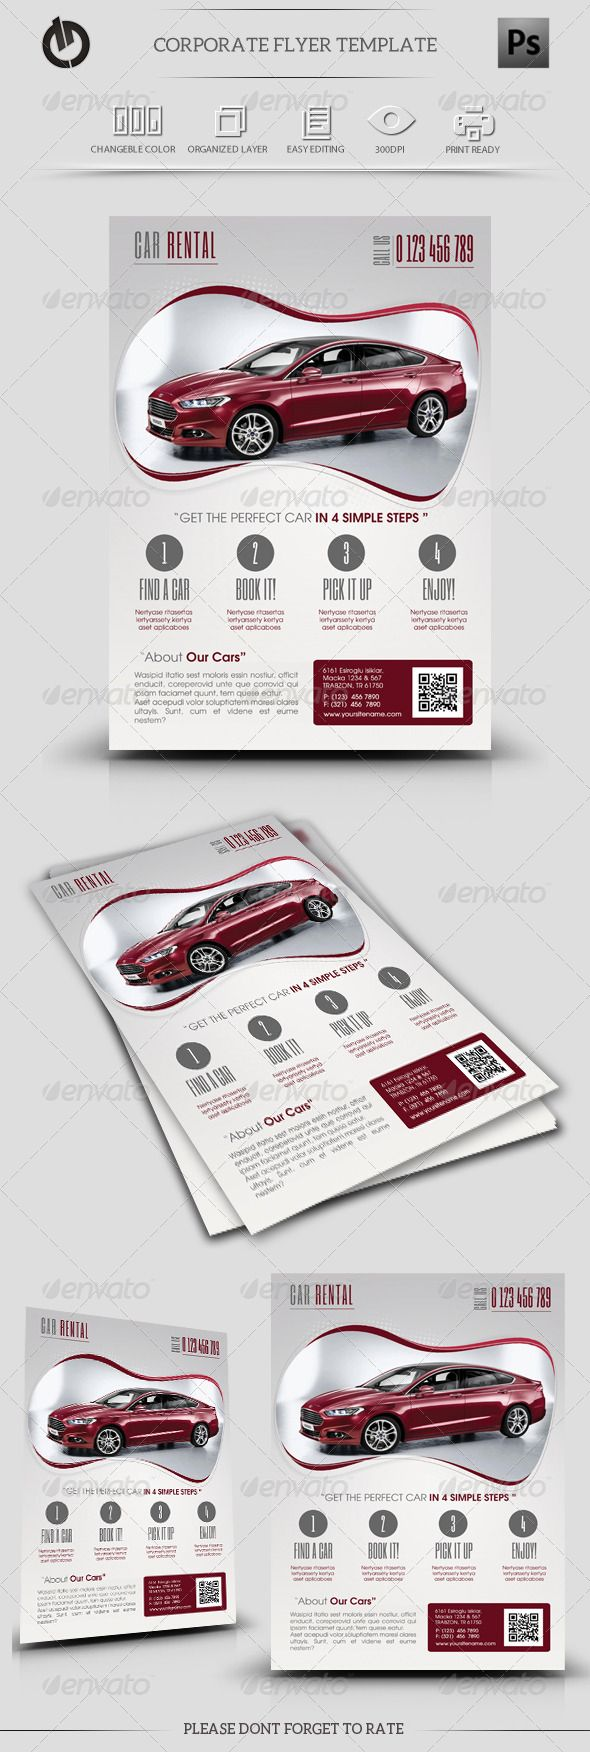 Car Rental Flyer Template | Flyer template, Text fonts and Template